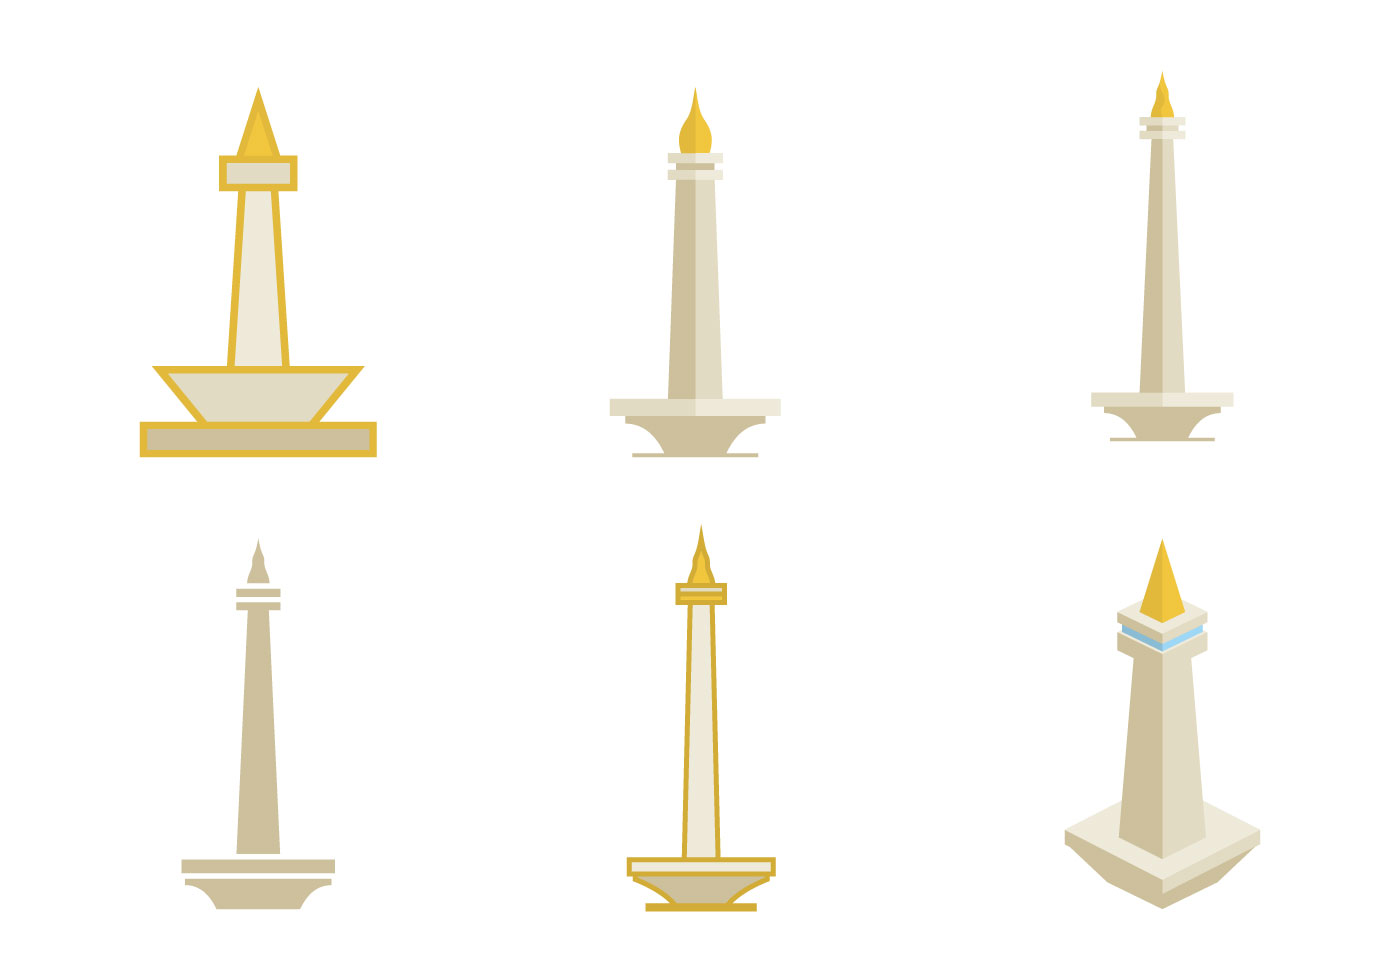 Monas Illustration Vector - Download Free Vector Art ...